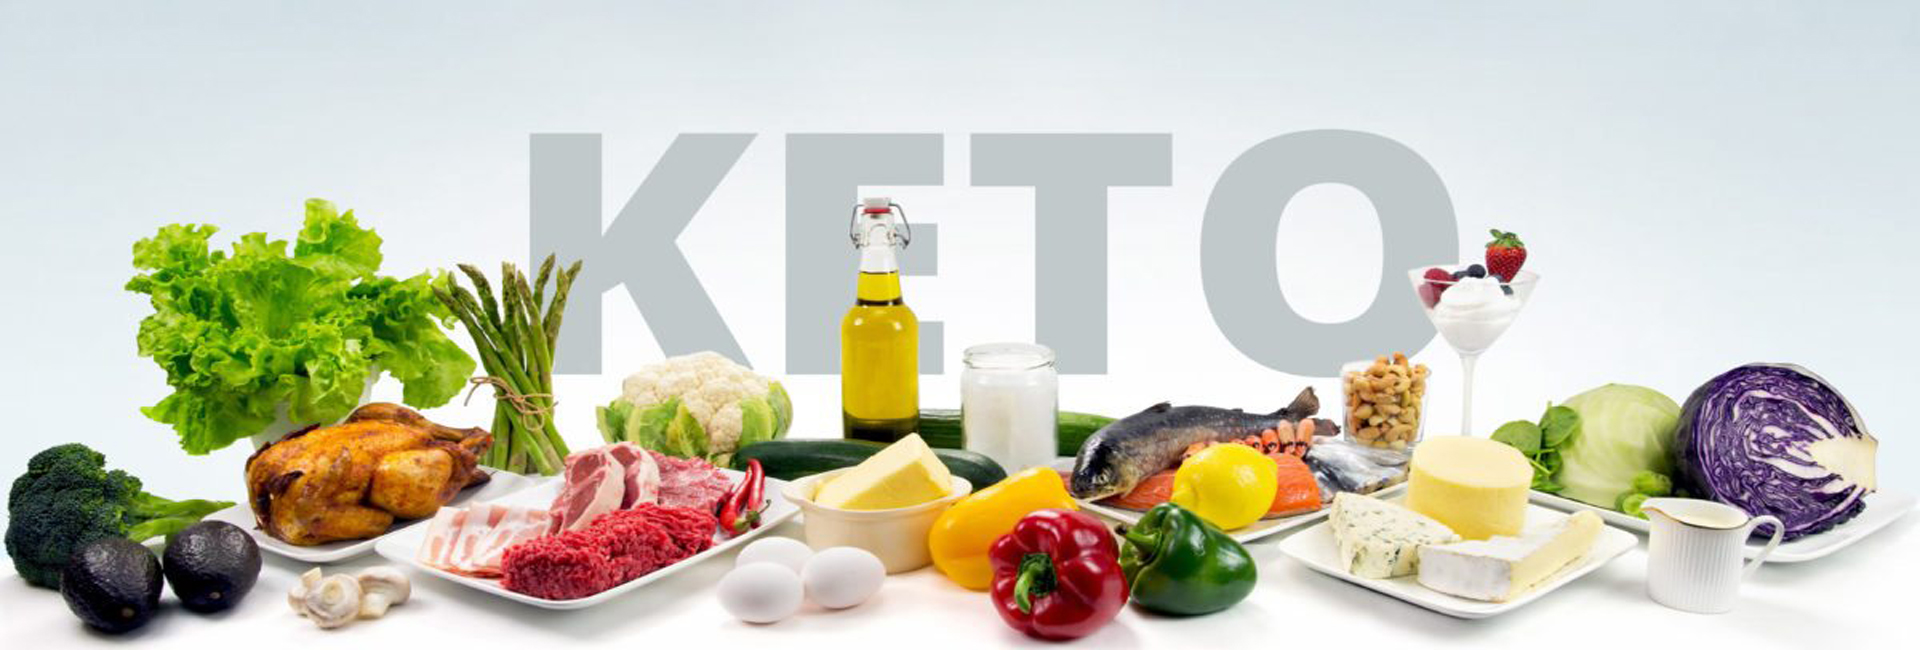 Keto Diet Plan In Becancour